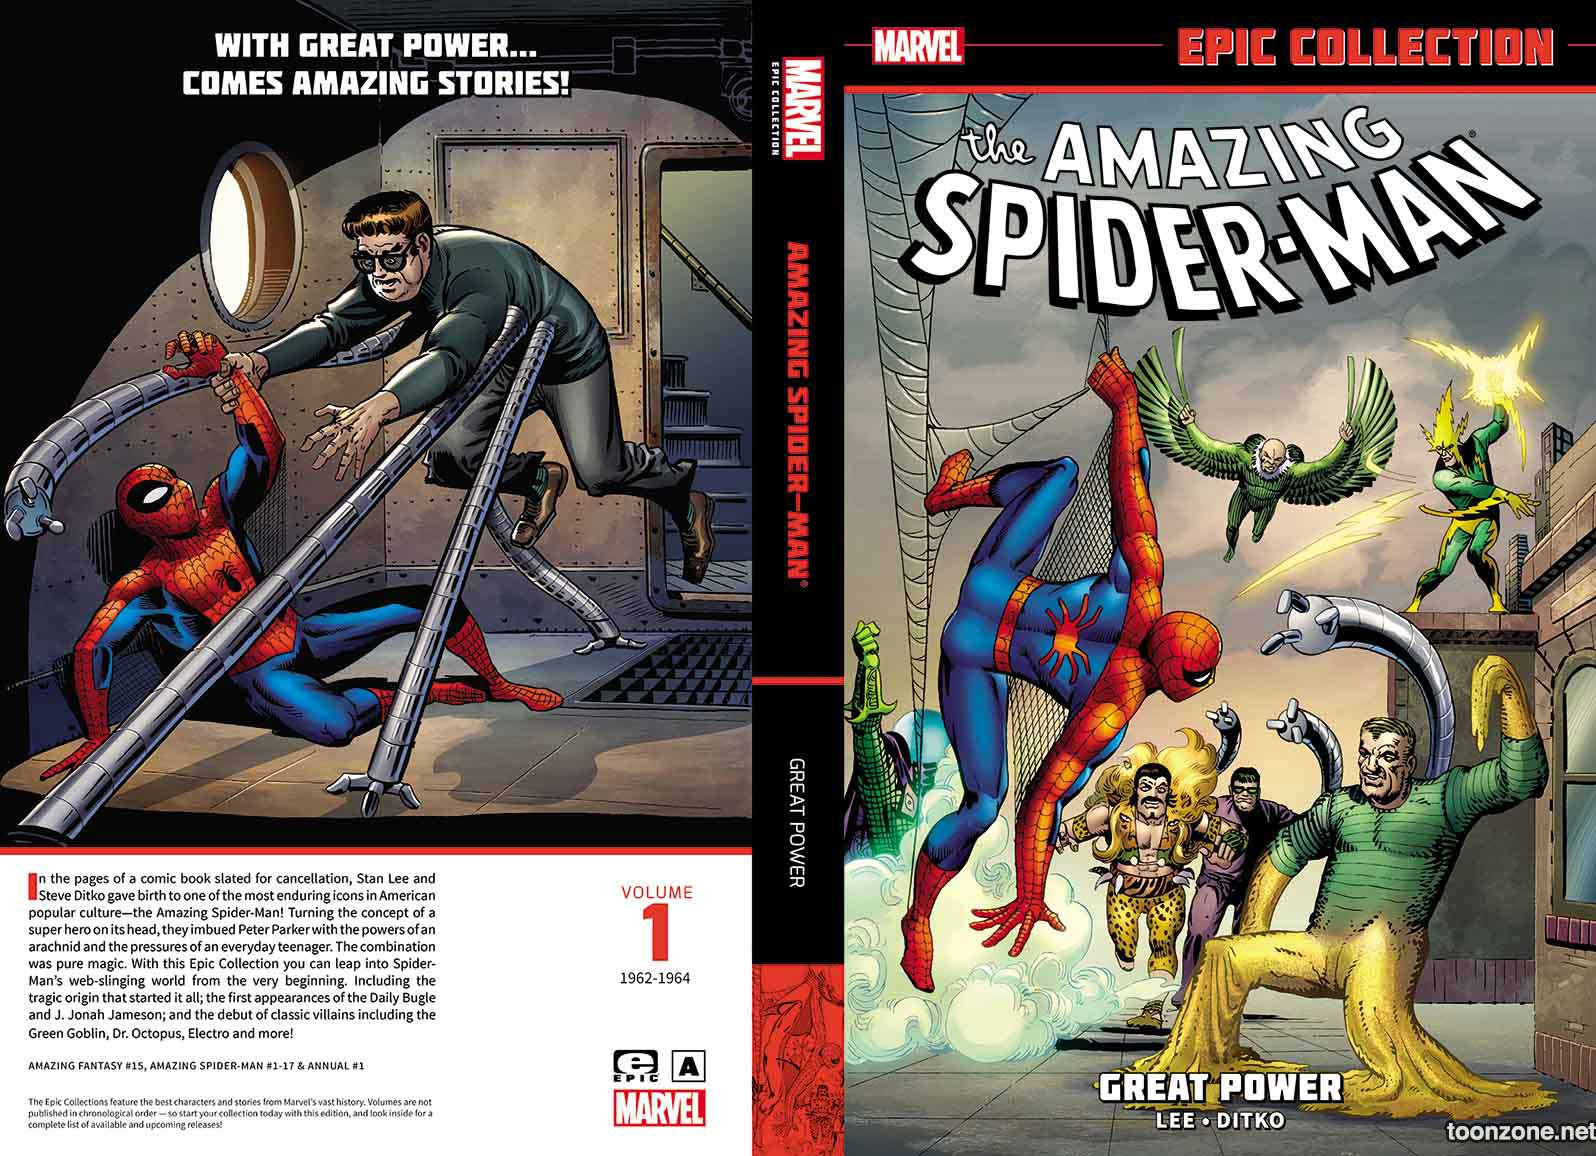 AMAZING SPIDER-MAN EPIC COLLECTION: GREAT POWER TPB